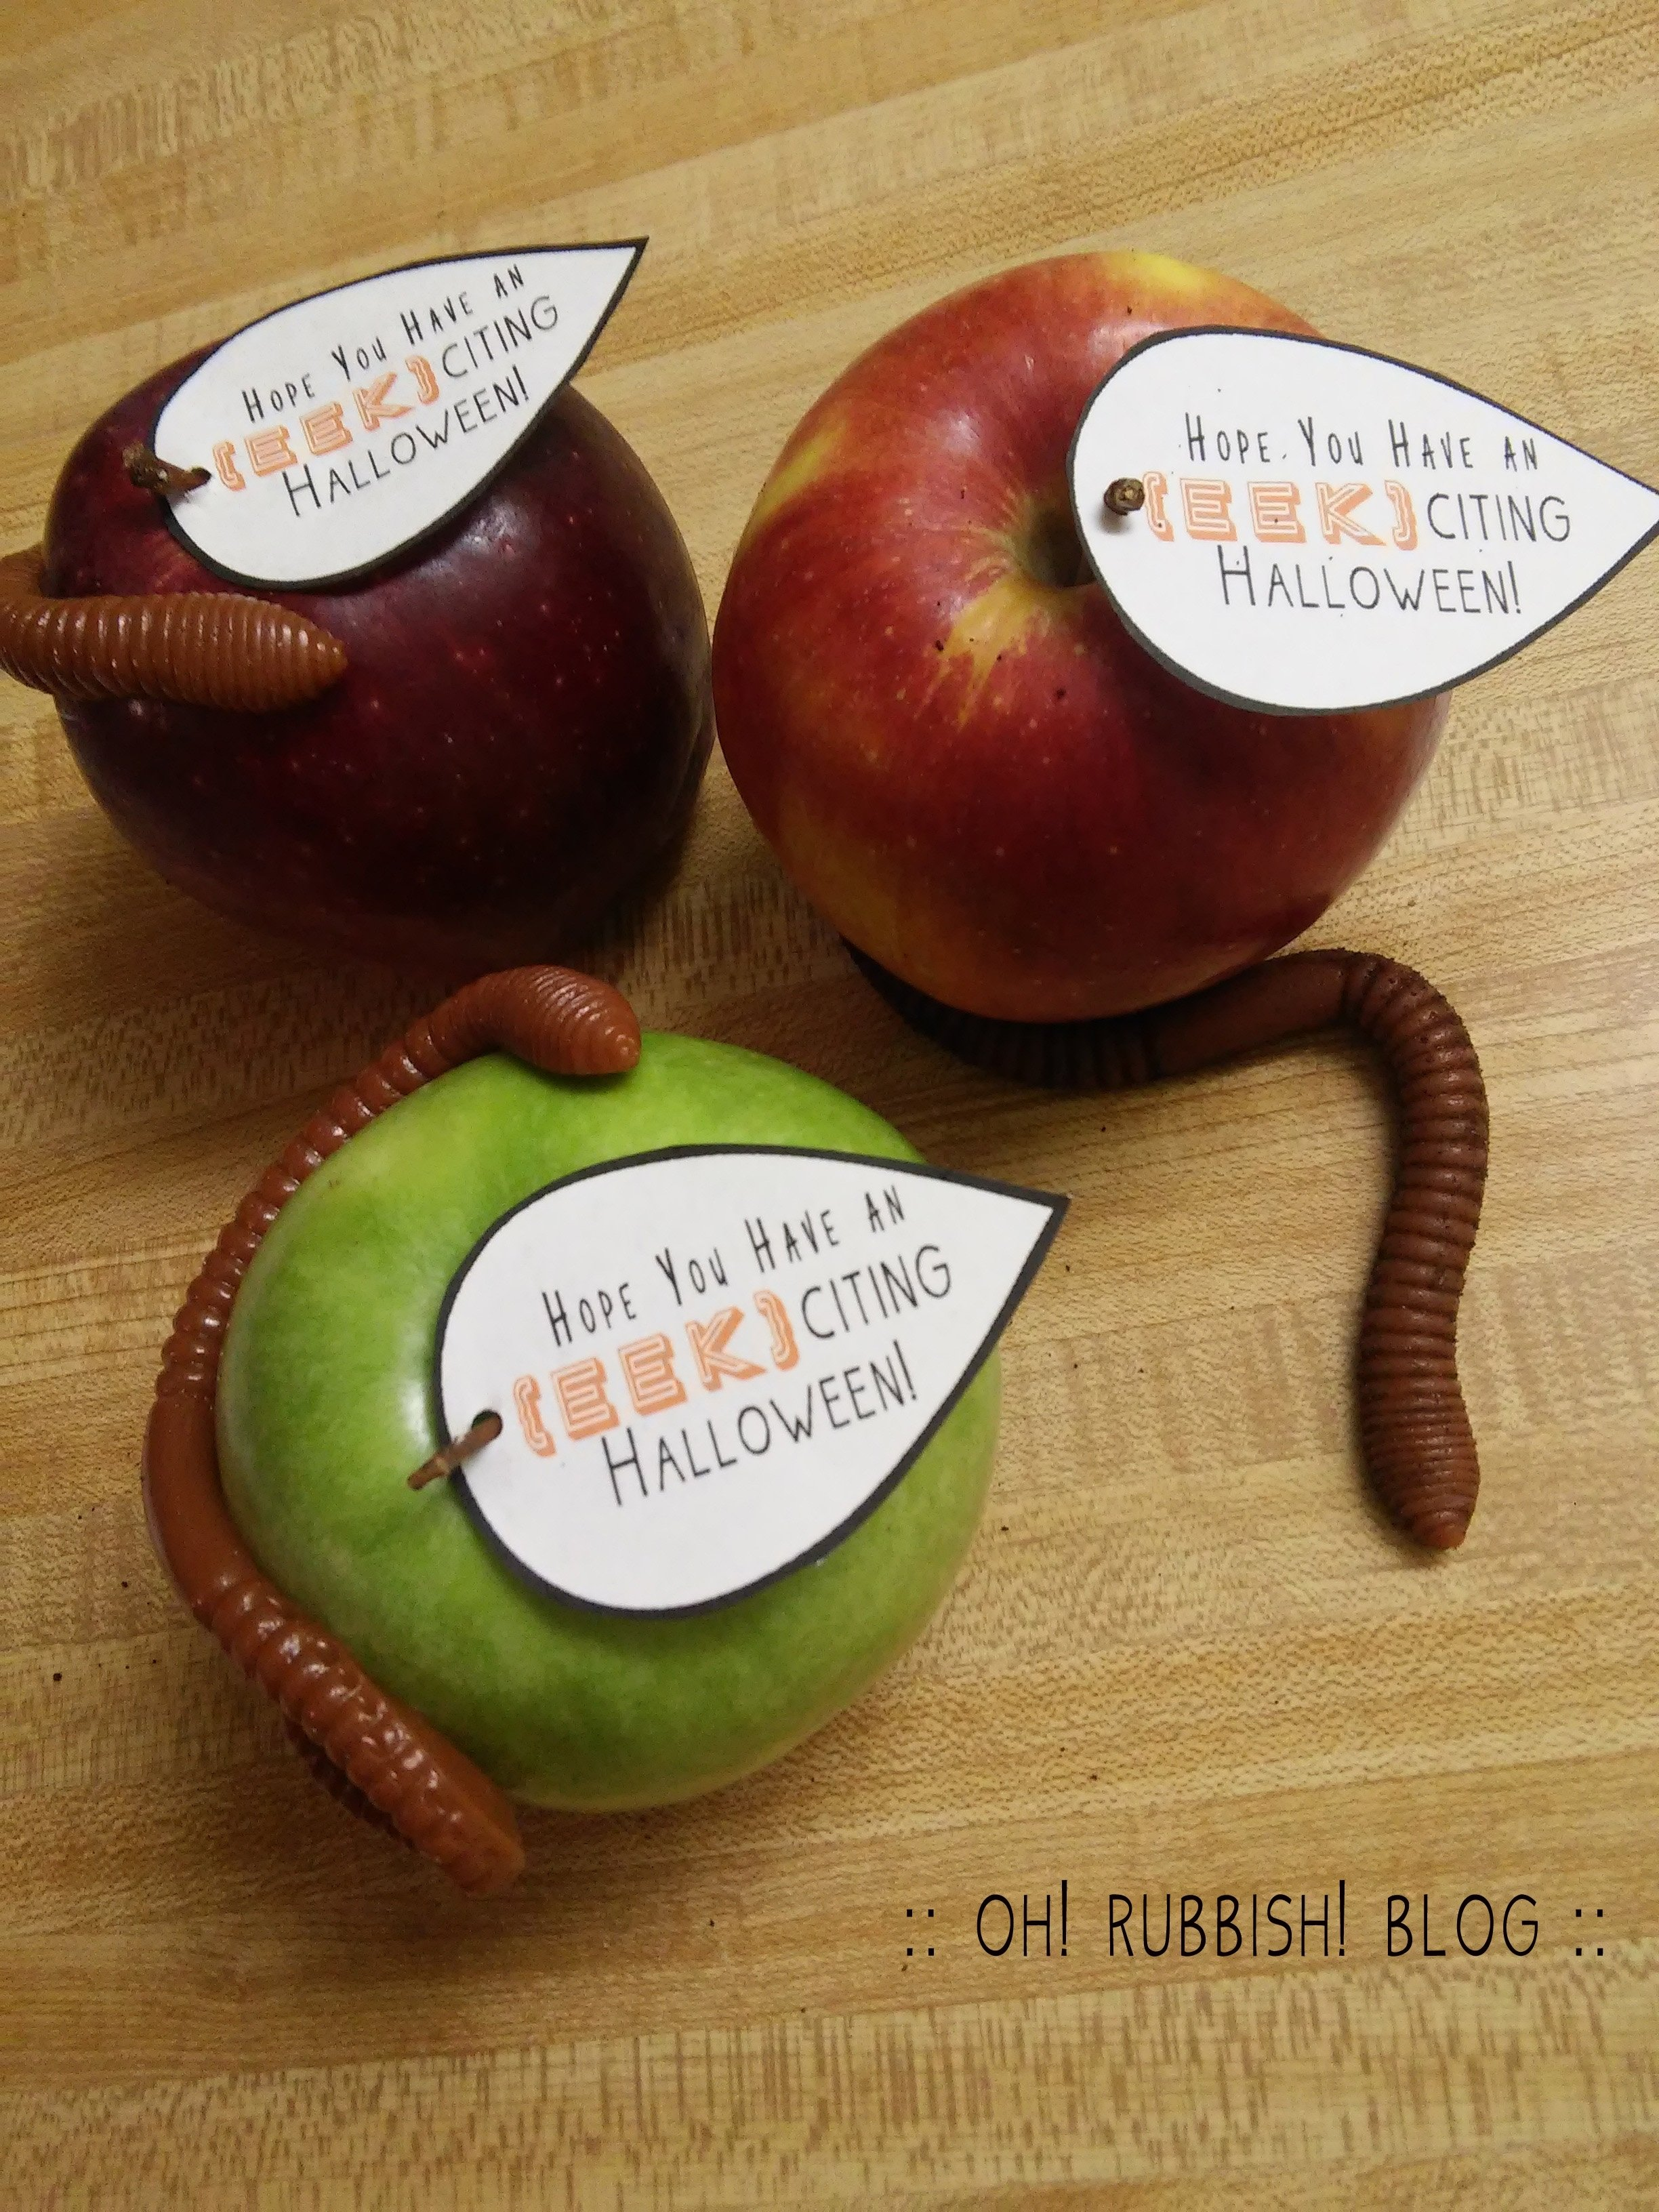 10 Stylish Halloween Gift Ideas For Teachers easy halloween teacher gifts apple gummy worm printable 1 2020